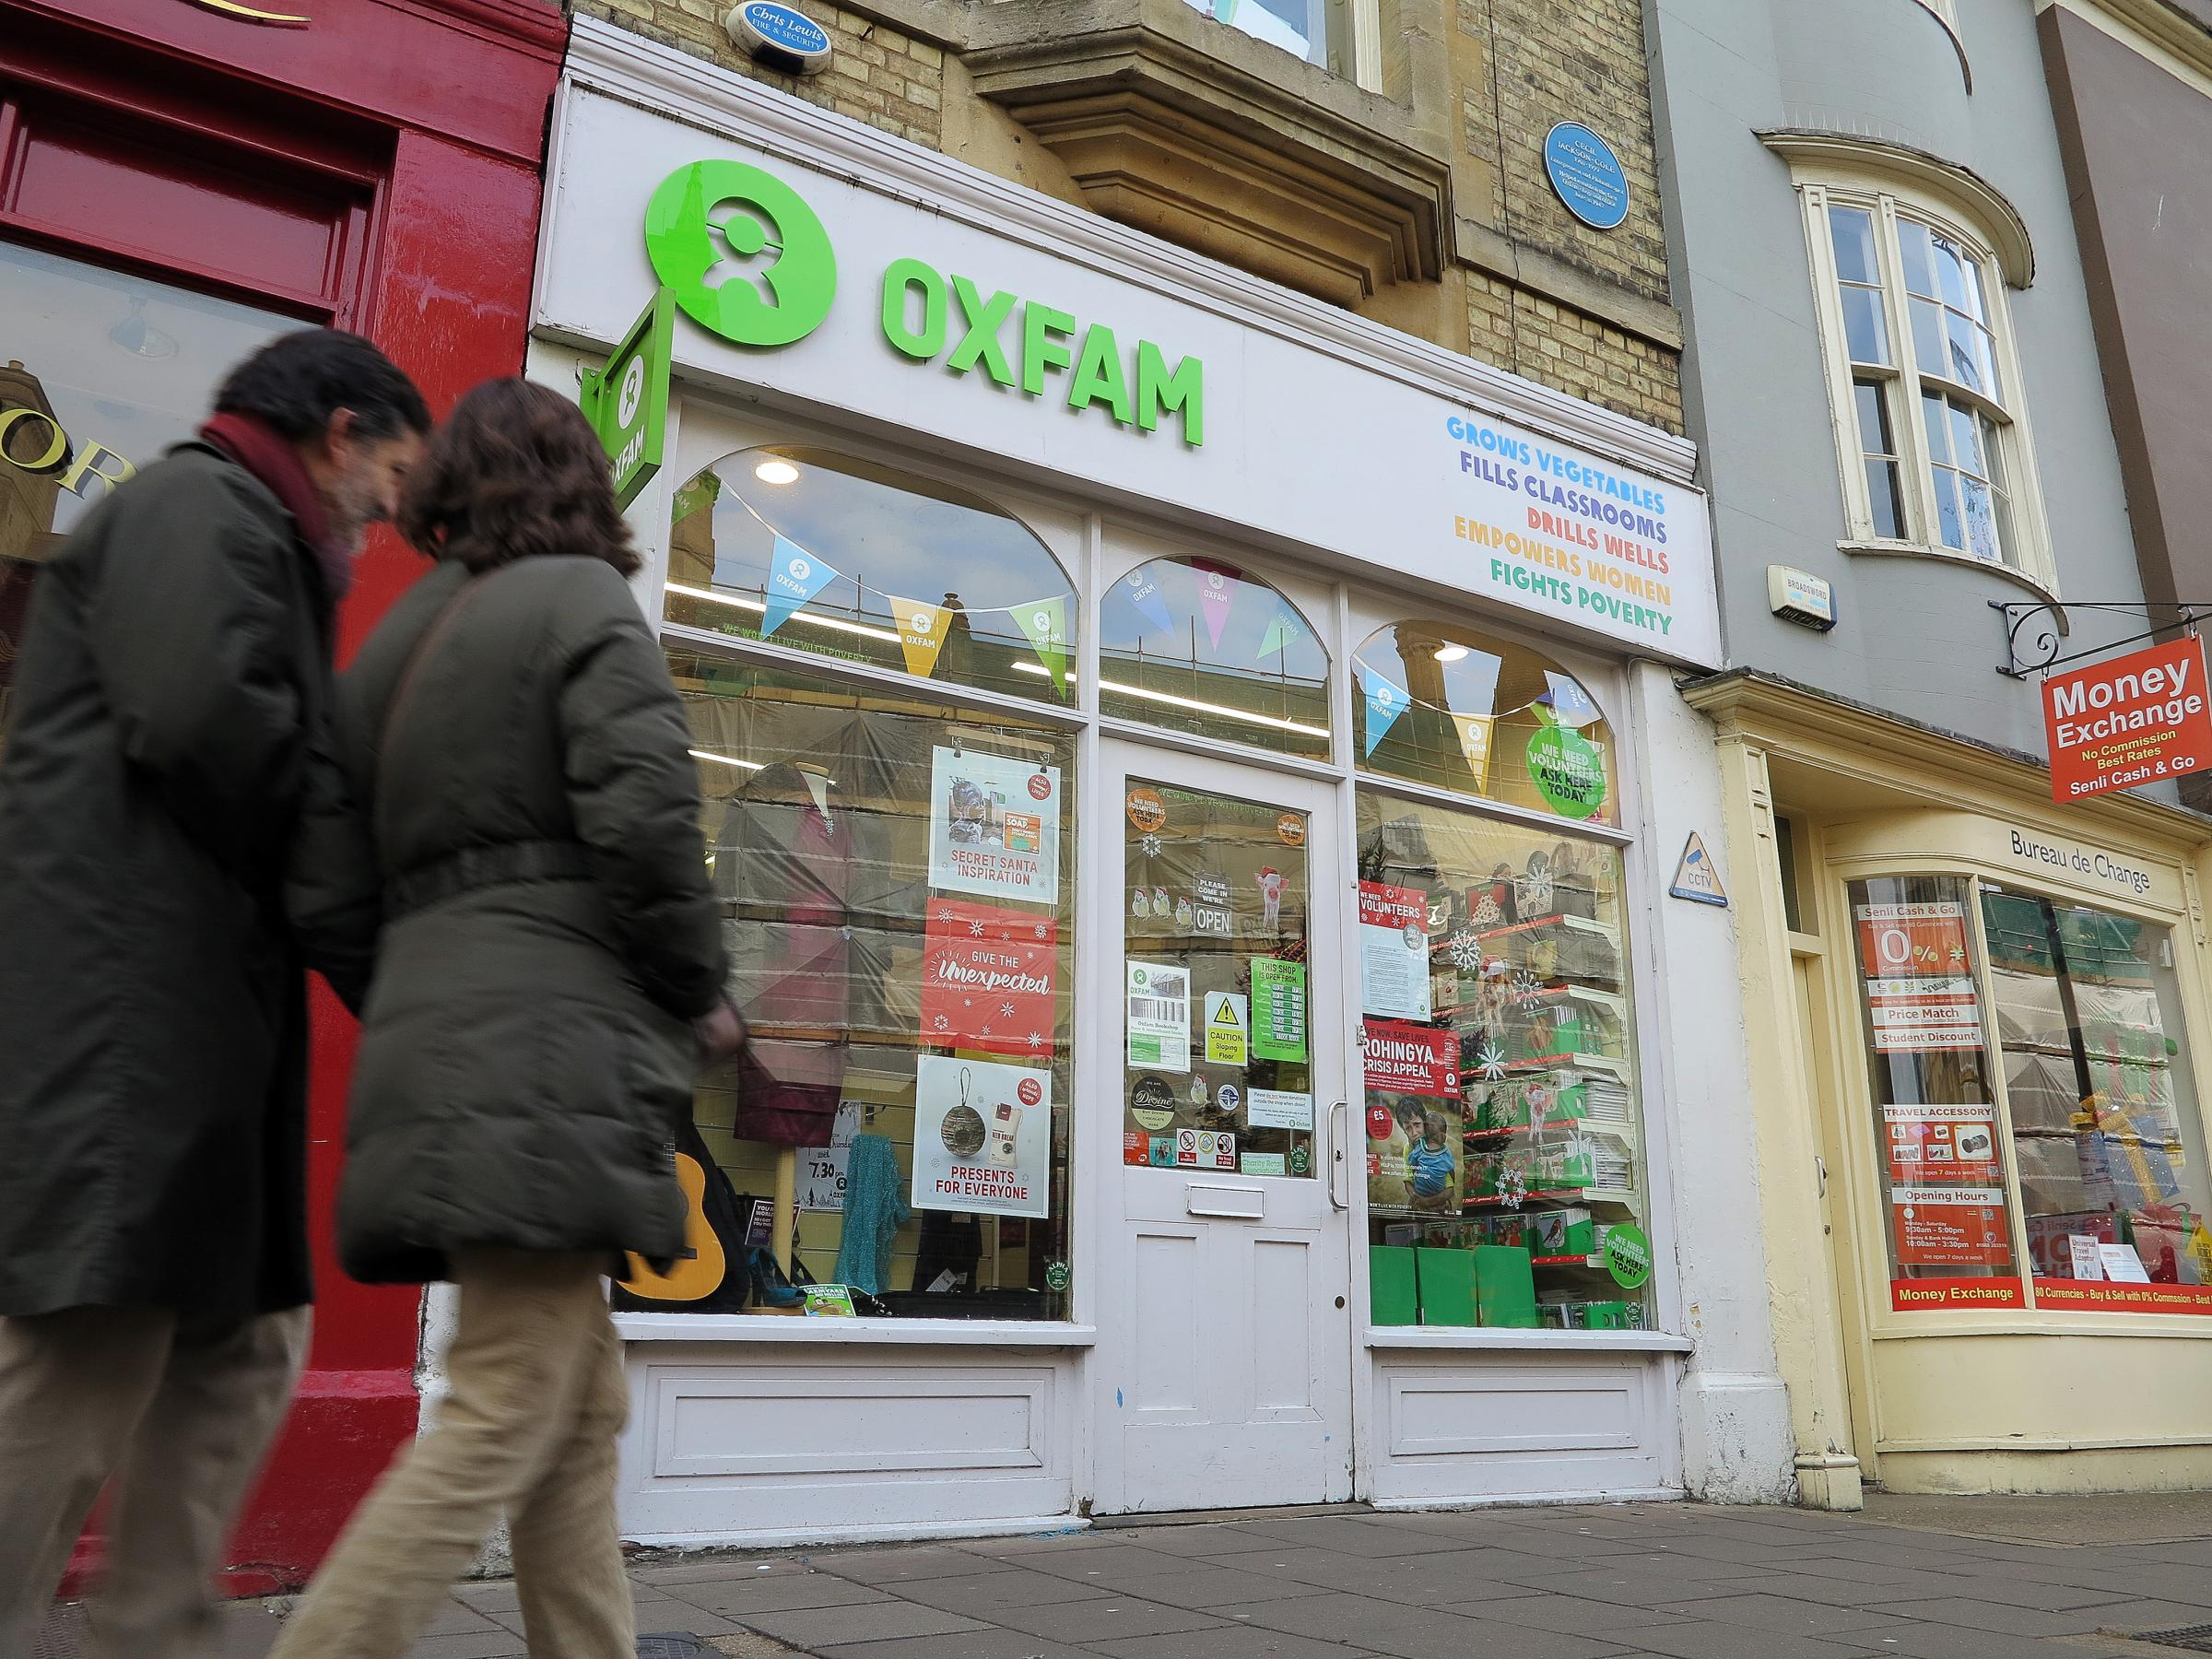 Oxfam's Broad Street shop